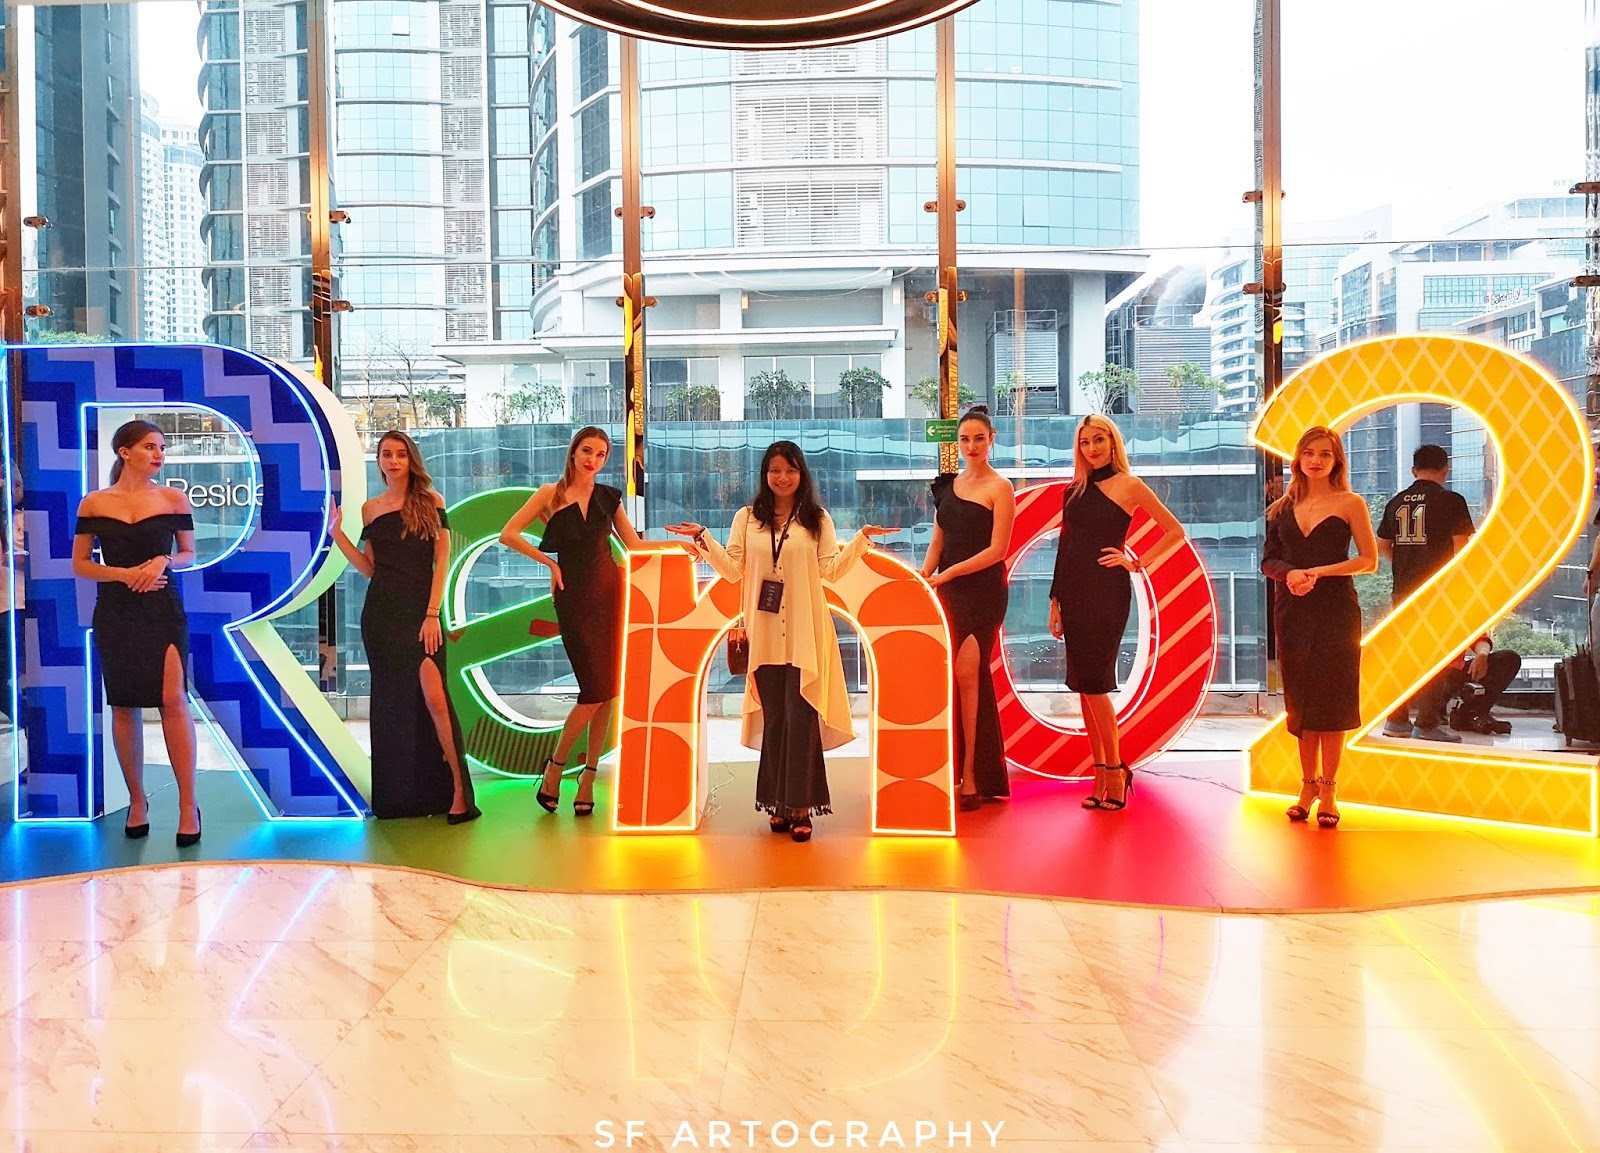 The Much-anticipated OPPO Reno2 Arrives in Malaysia With Powerful Camera Performance To Reinforce its Brand of Creativity